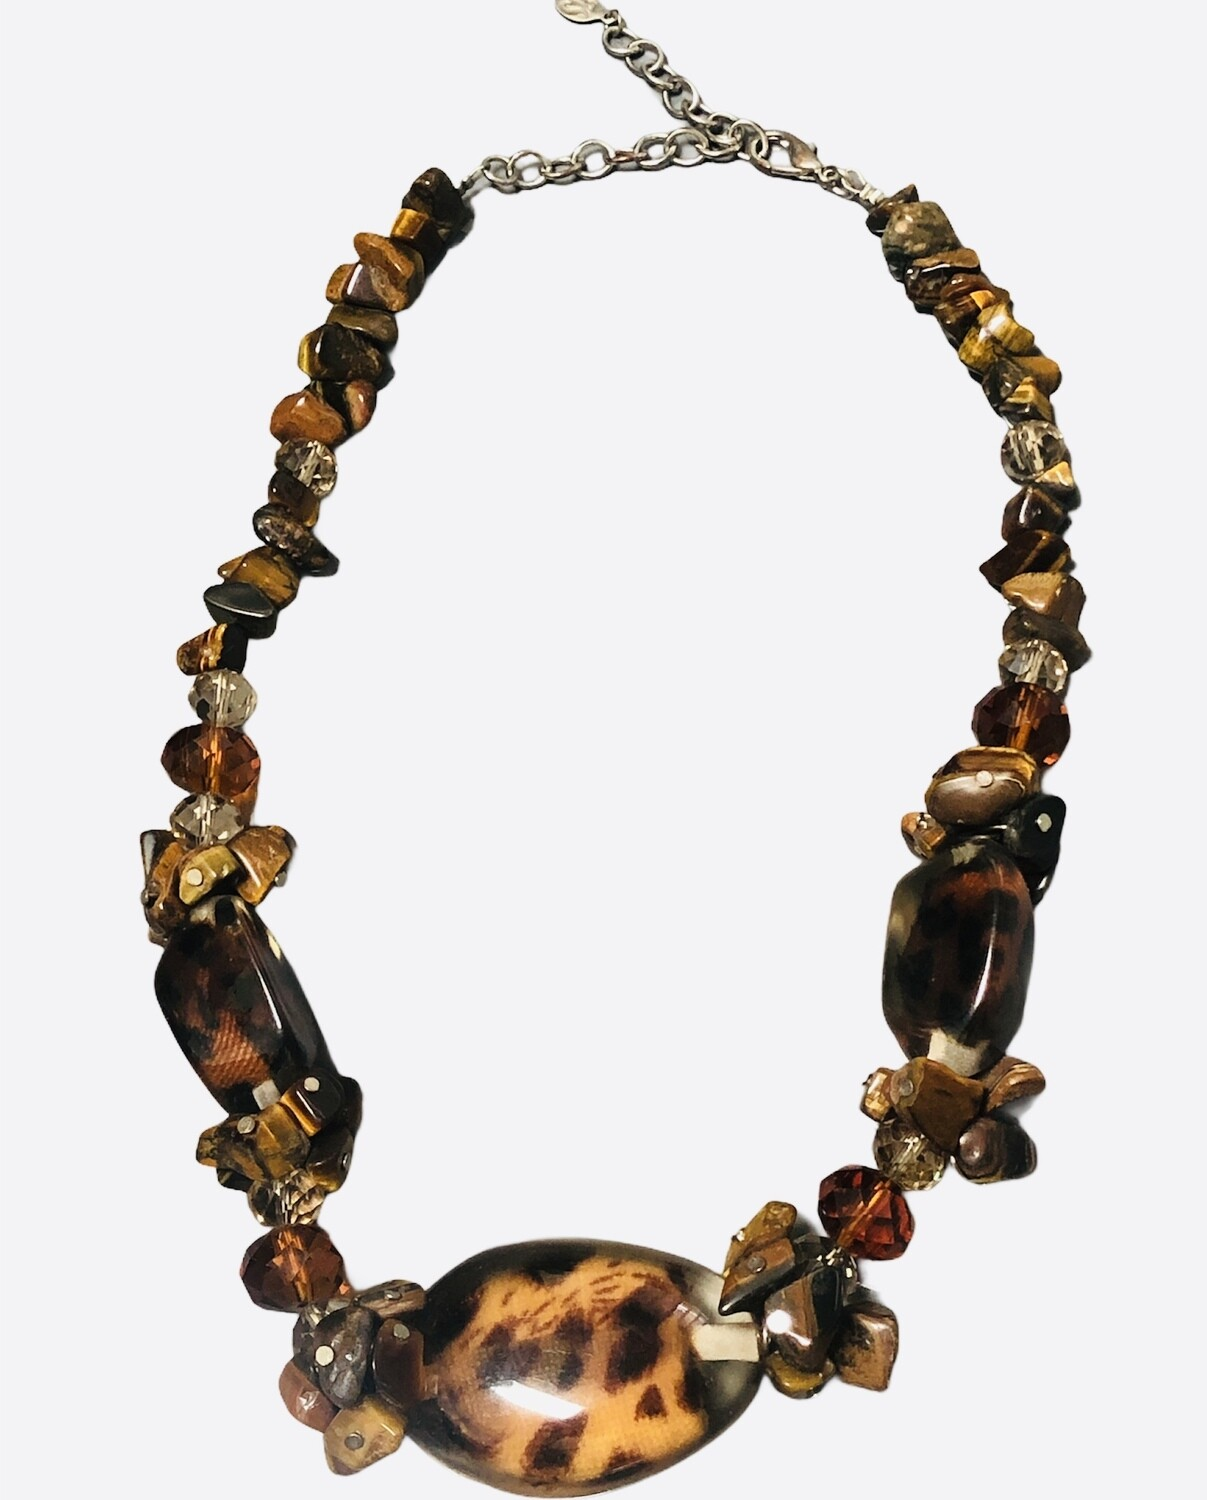 Animal Bead Necklace with Tiger Eye & Crystal Accent